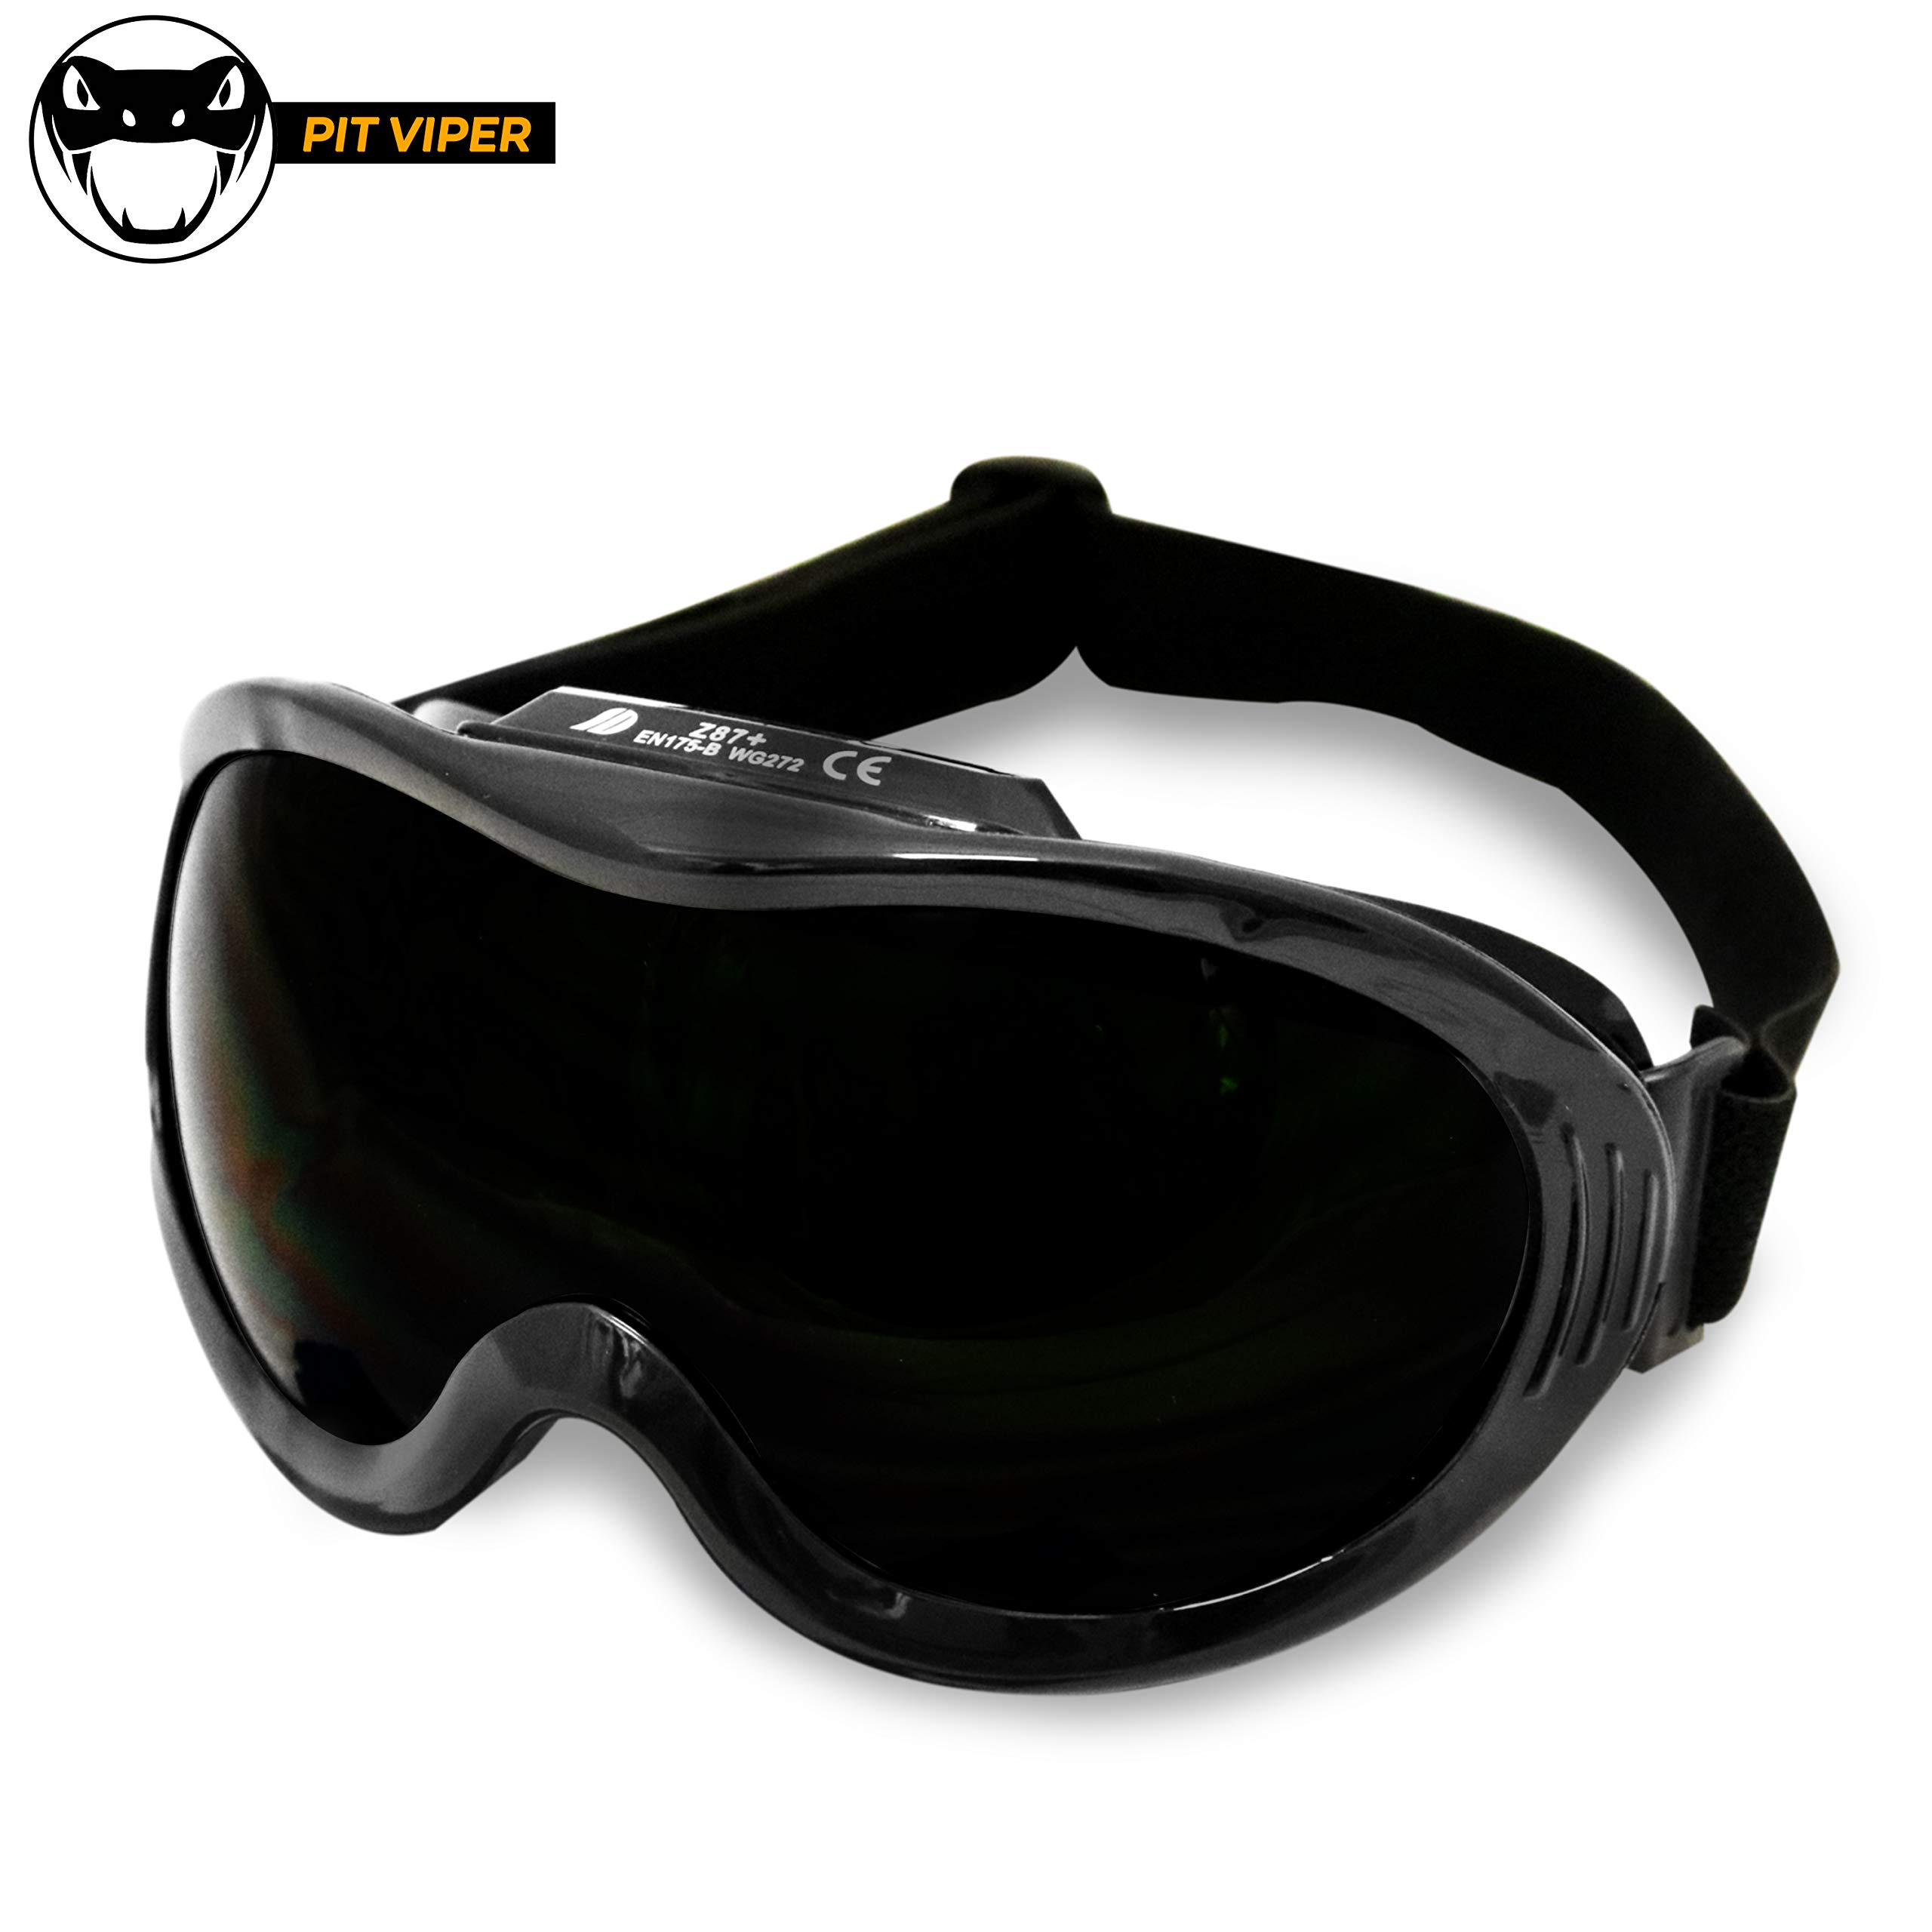 KwikSafety (Charlotte, NC) PIT VIPER ANSI Industrial (ANTI-FOG, ANTI-SCRATCH, Snug FIT) Welding Goggles Shade 5 | Ventilation Infrared Welding Torch Brazing Flame Cutting Gas Oxy-Acetylene Black by KwikSafety